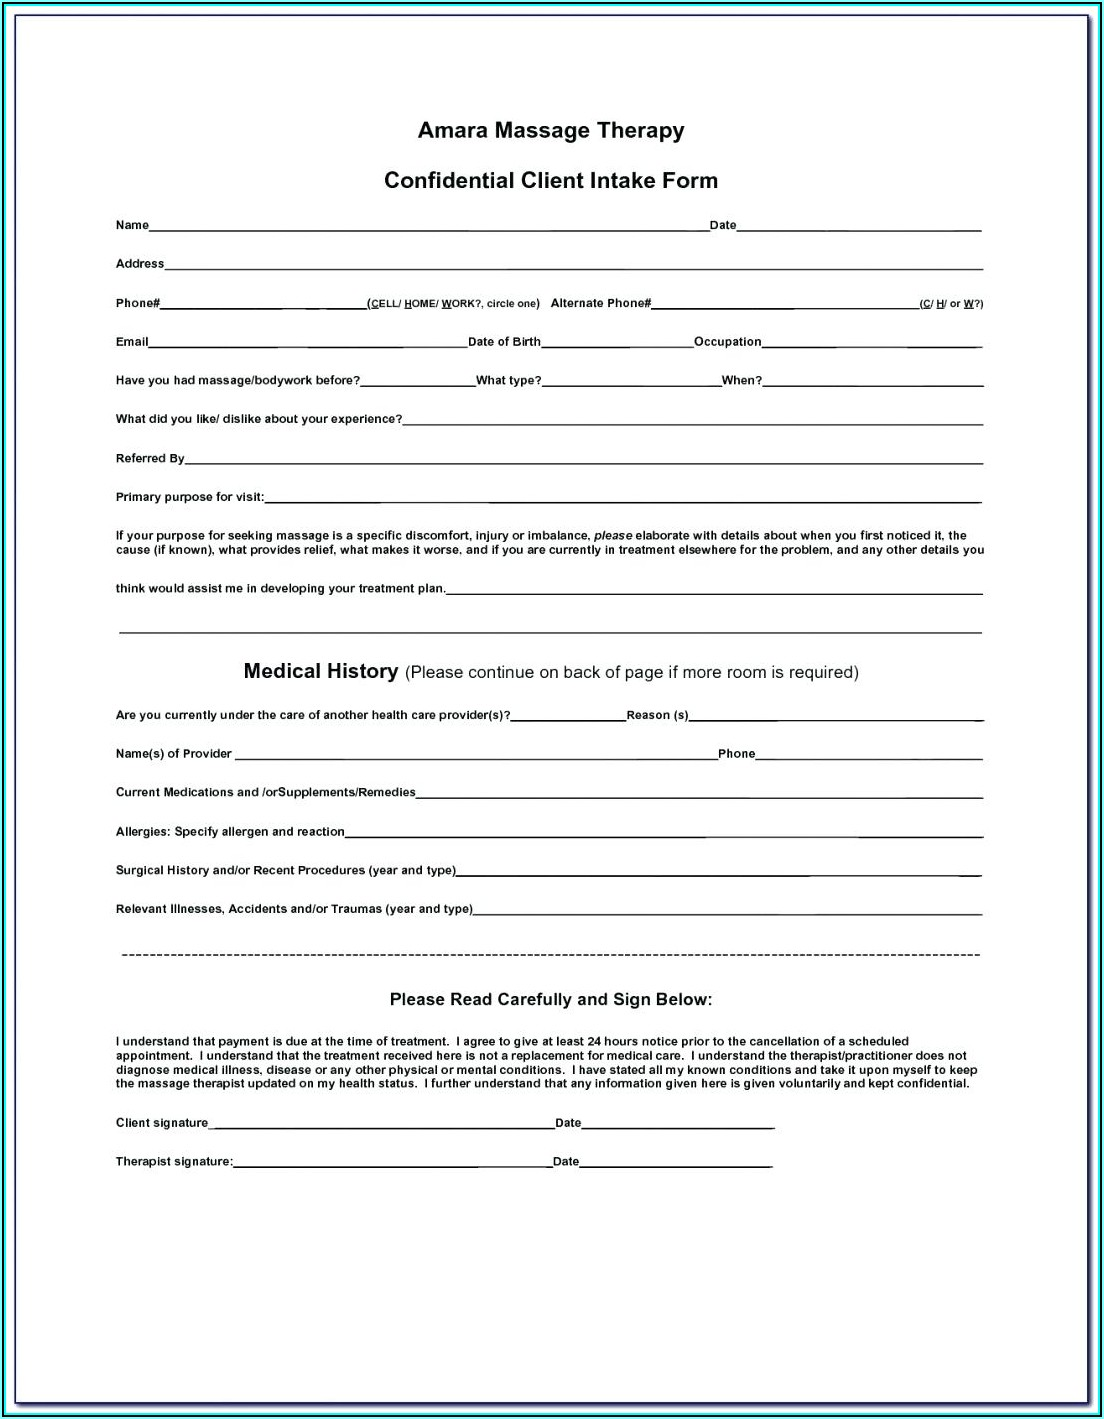 2020 Tax Preparation Client Intake Form Template